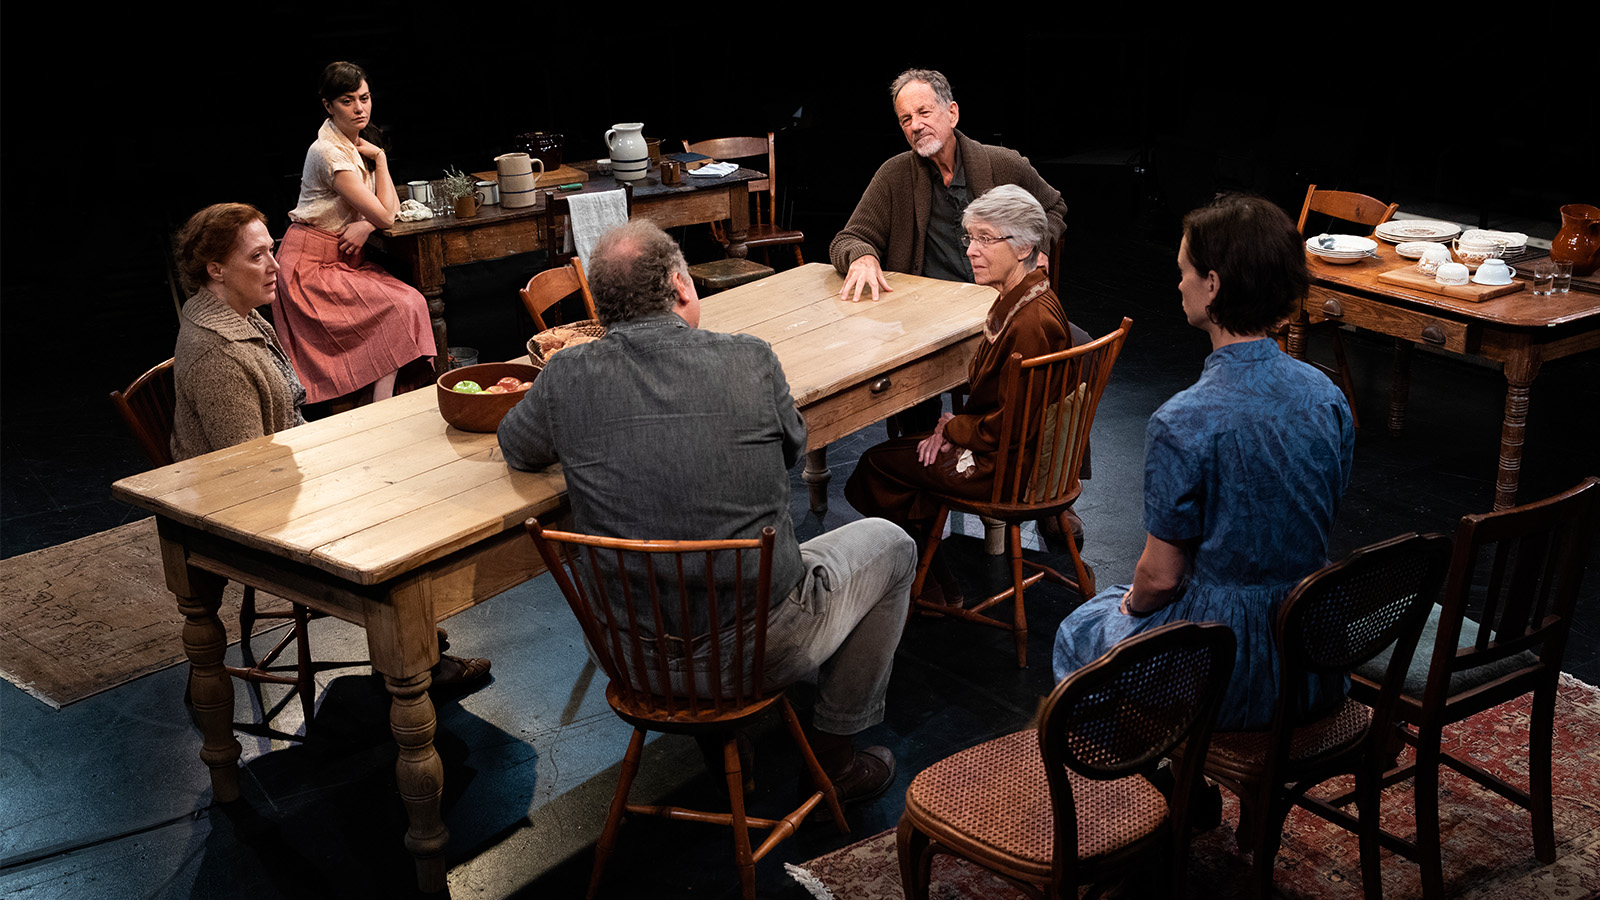 Performers from the production of Uncle Vanya having a discussion around the table